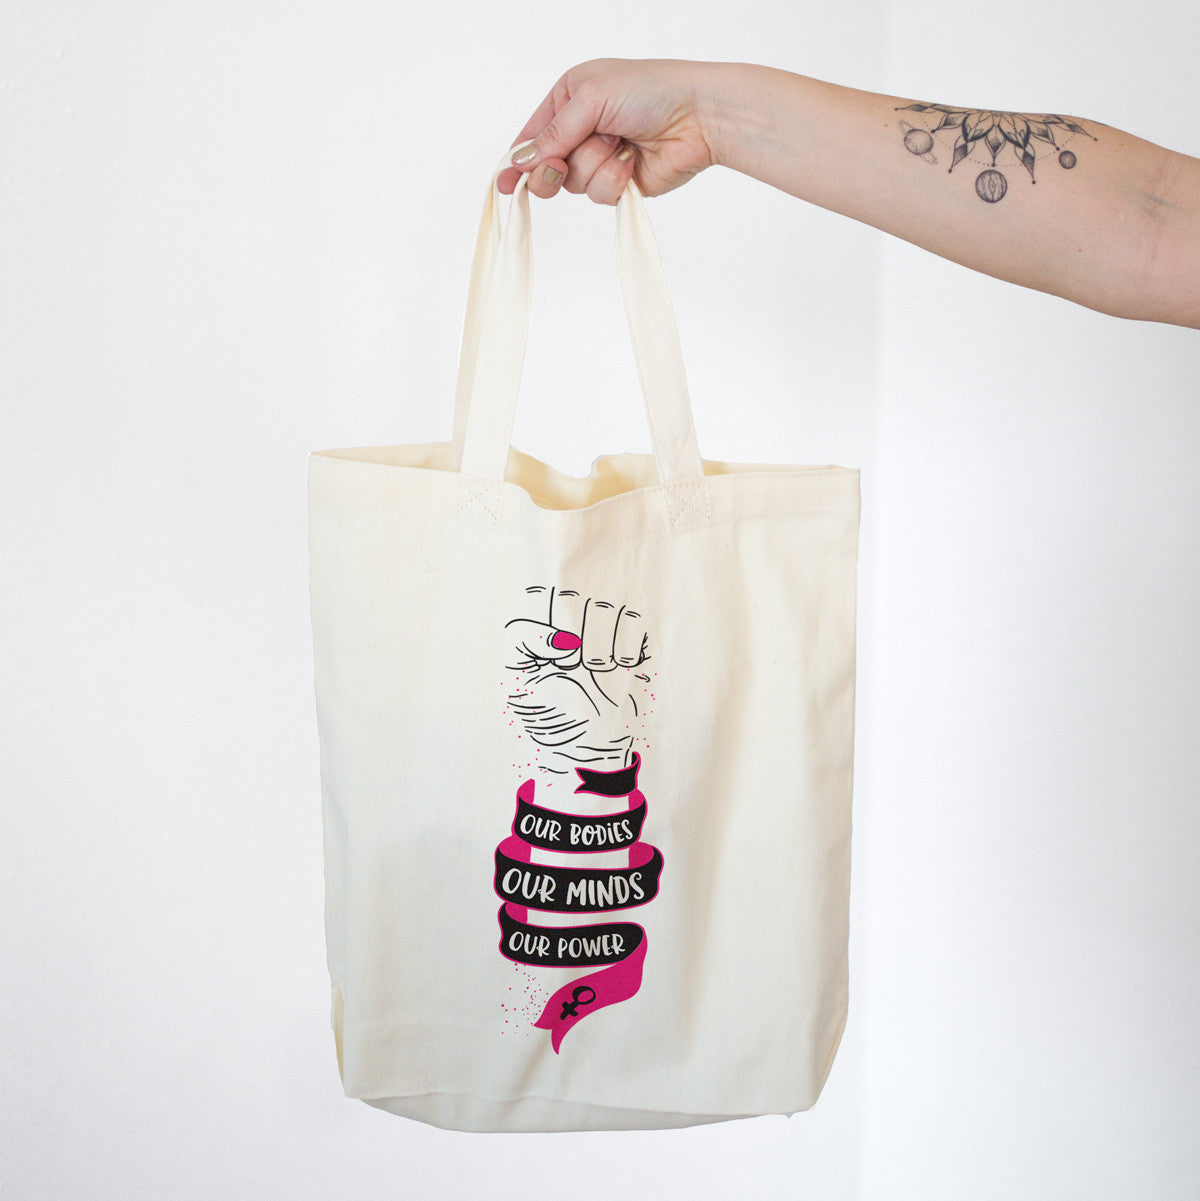 Our Bodies Our Minds Our Power Cotton Tote Bag